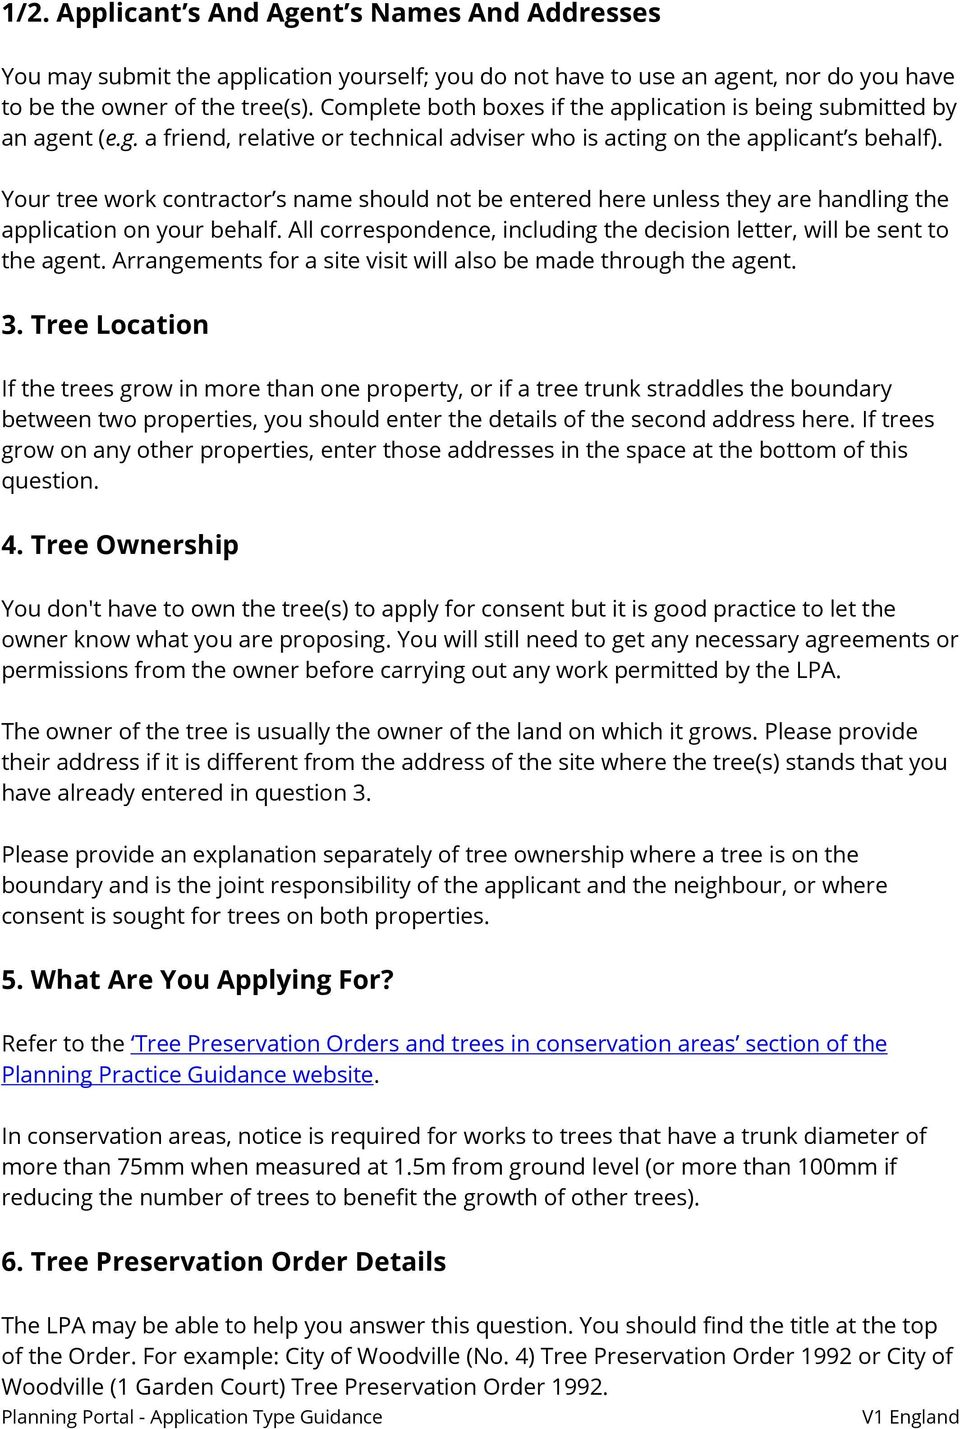 Your tree work contractor s name should not be entered here unless they are handling the application on your behalf. All correspondence, including the decision letter, will be sent to the agent.